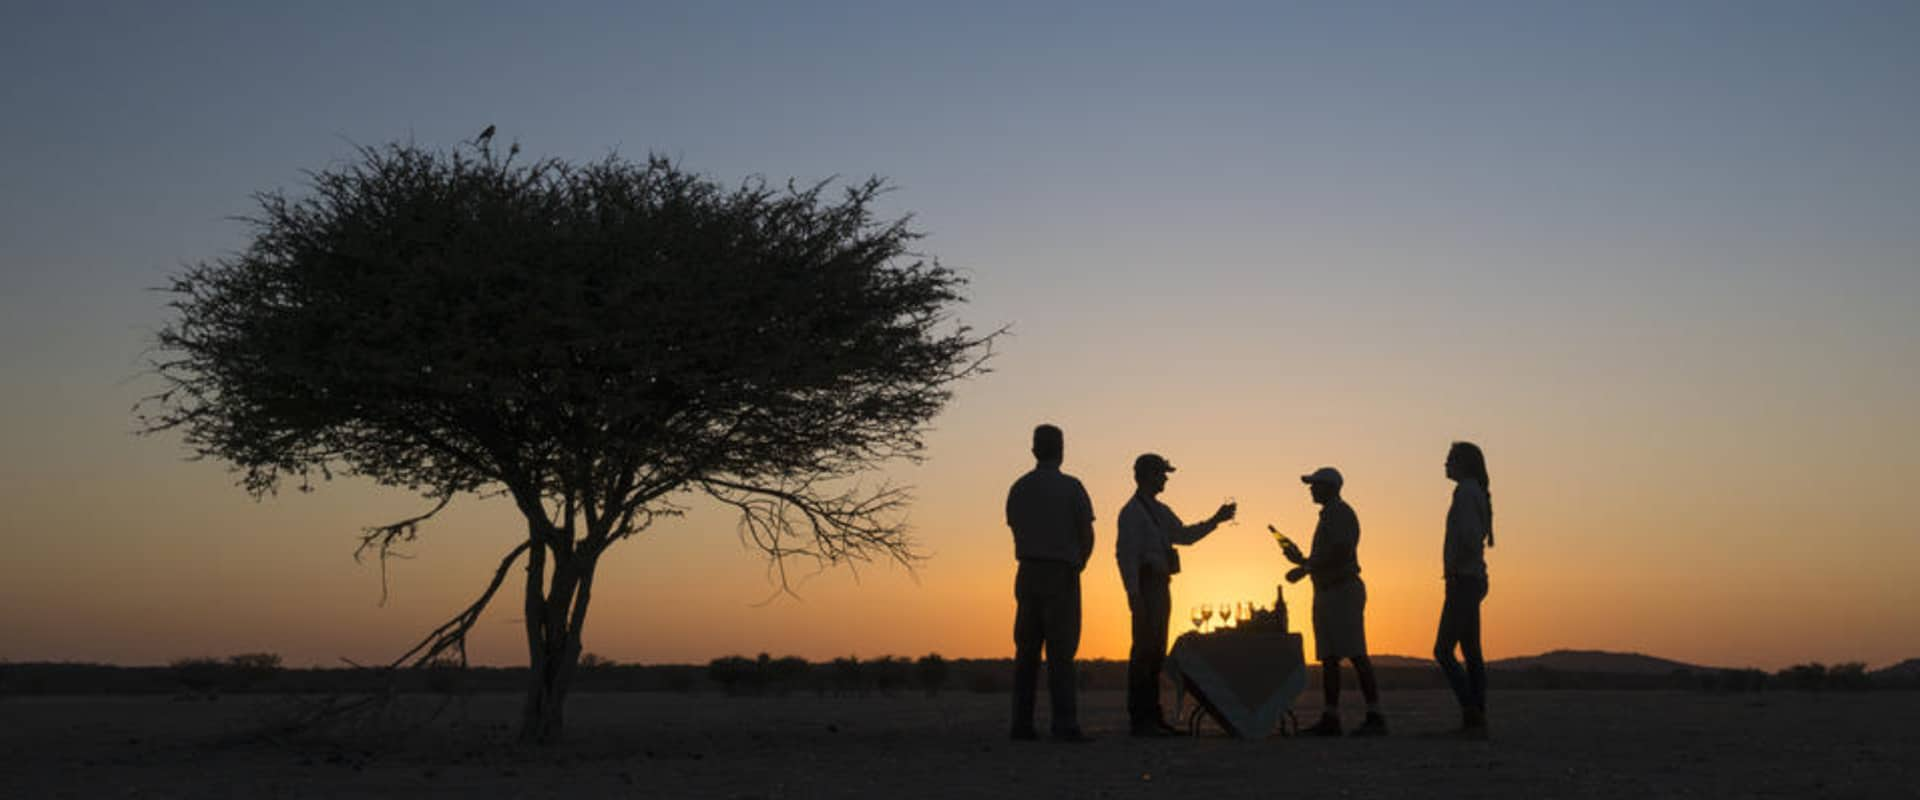 View game in the Onguma Game Reserve at sunset